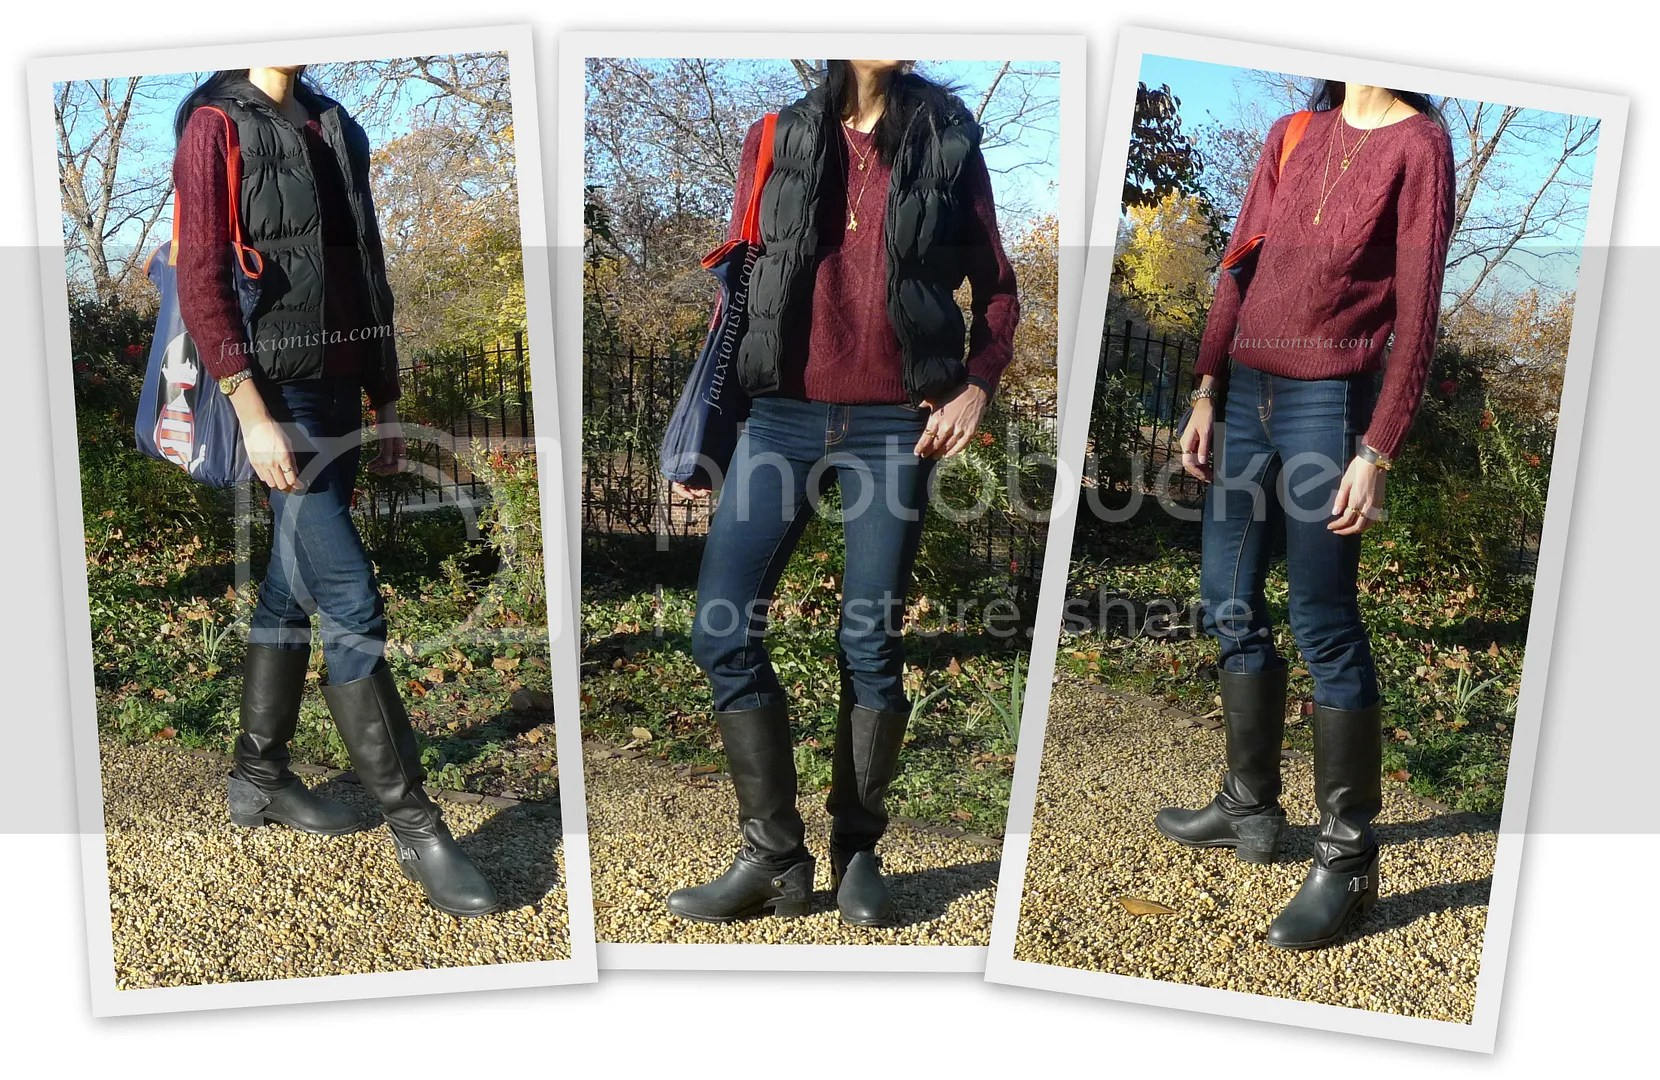 Fauxionable Outfit - Burgundy Oxblood H&M Sweater